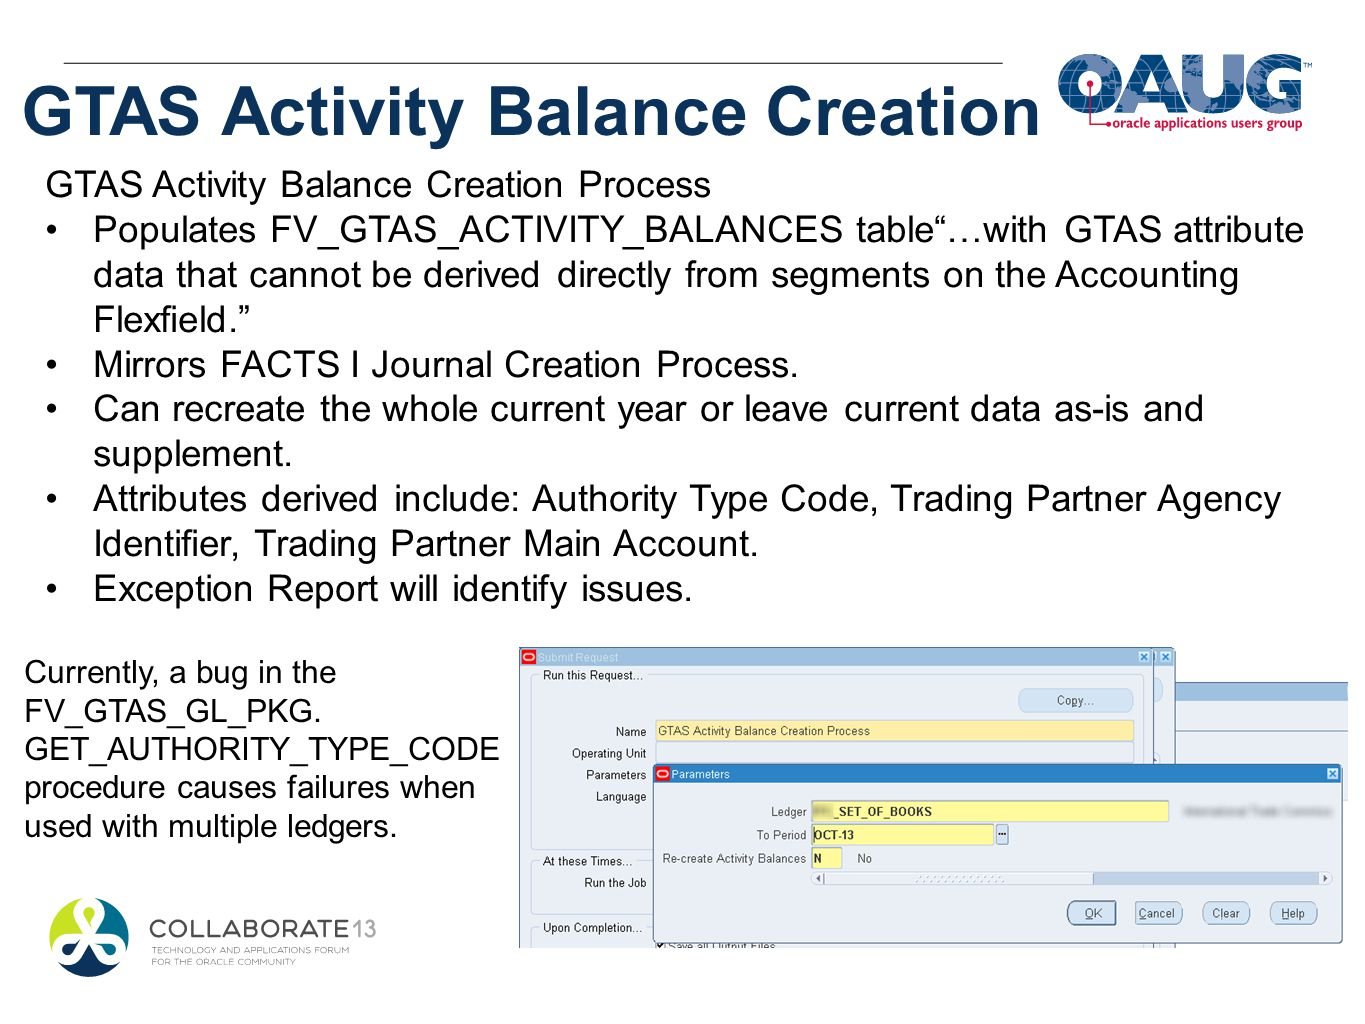 GTAS Activity Balance Creation